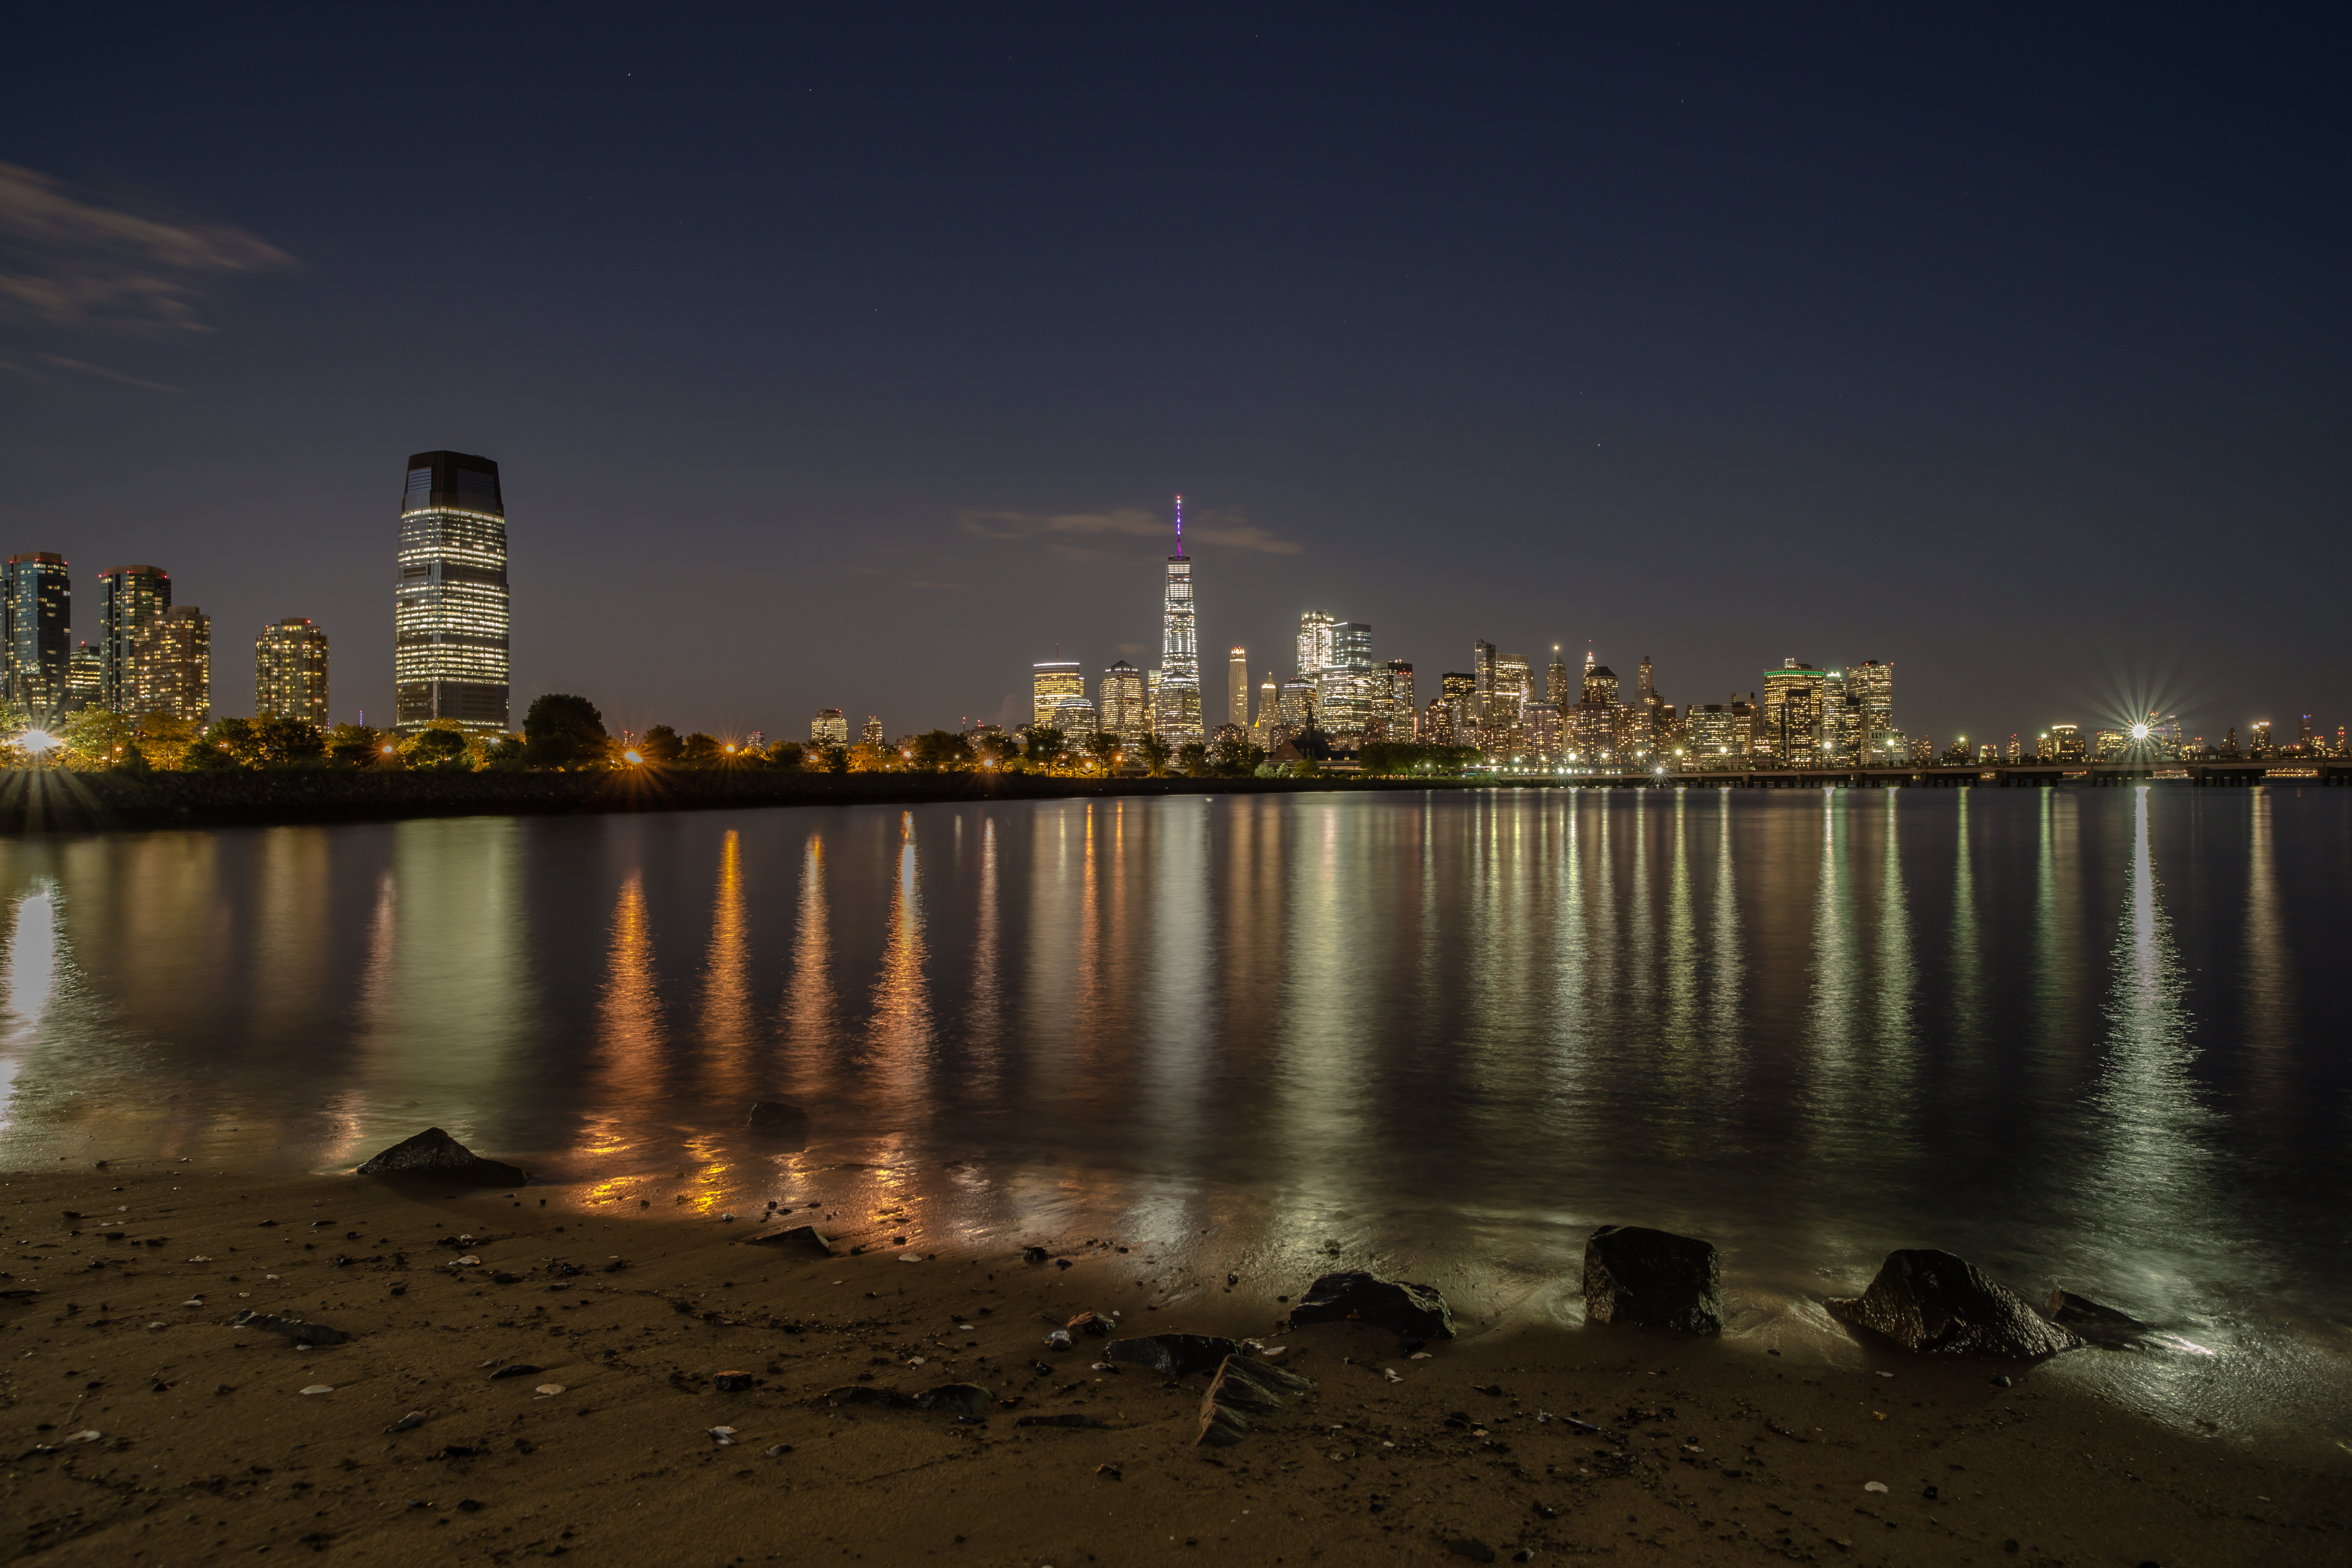 Manhattan and jersey city view during twilight from the sand beach example image 1